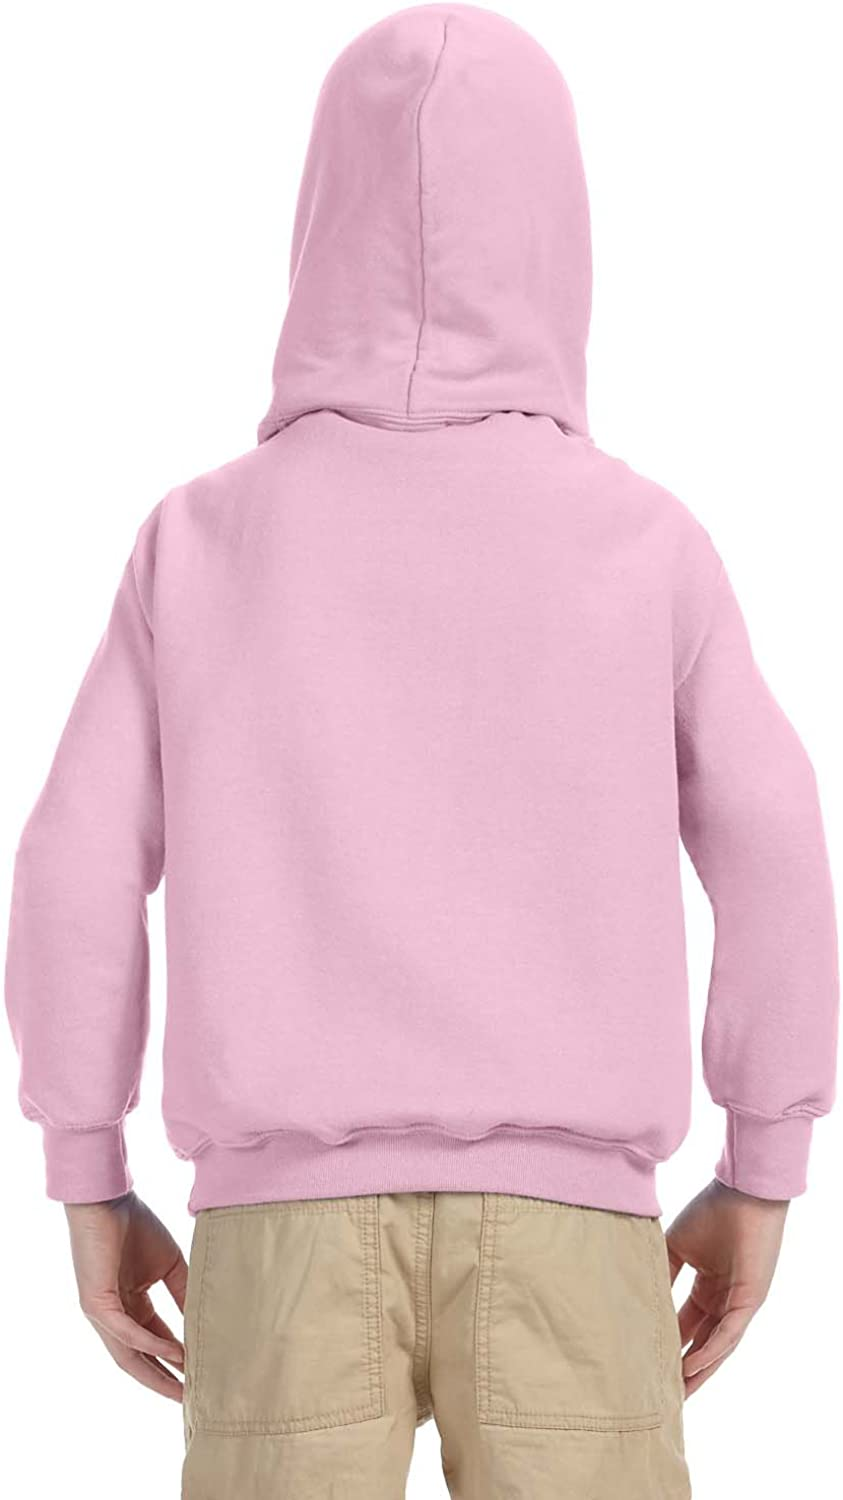 Storm Area 51 Shirts Oof Hoodie for Kids